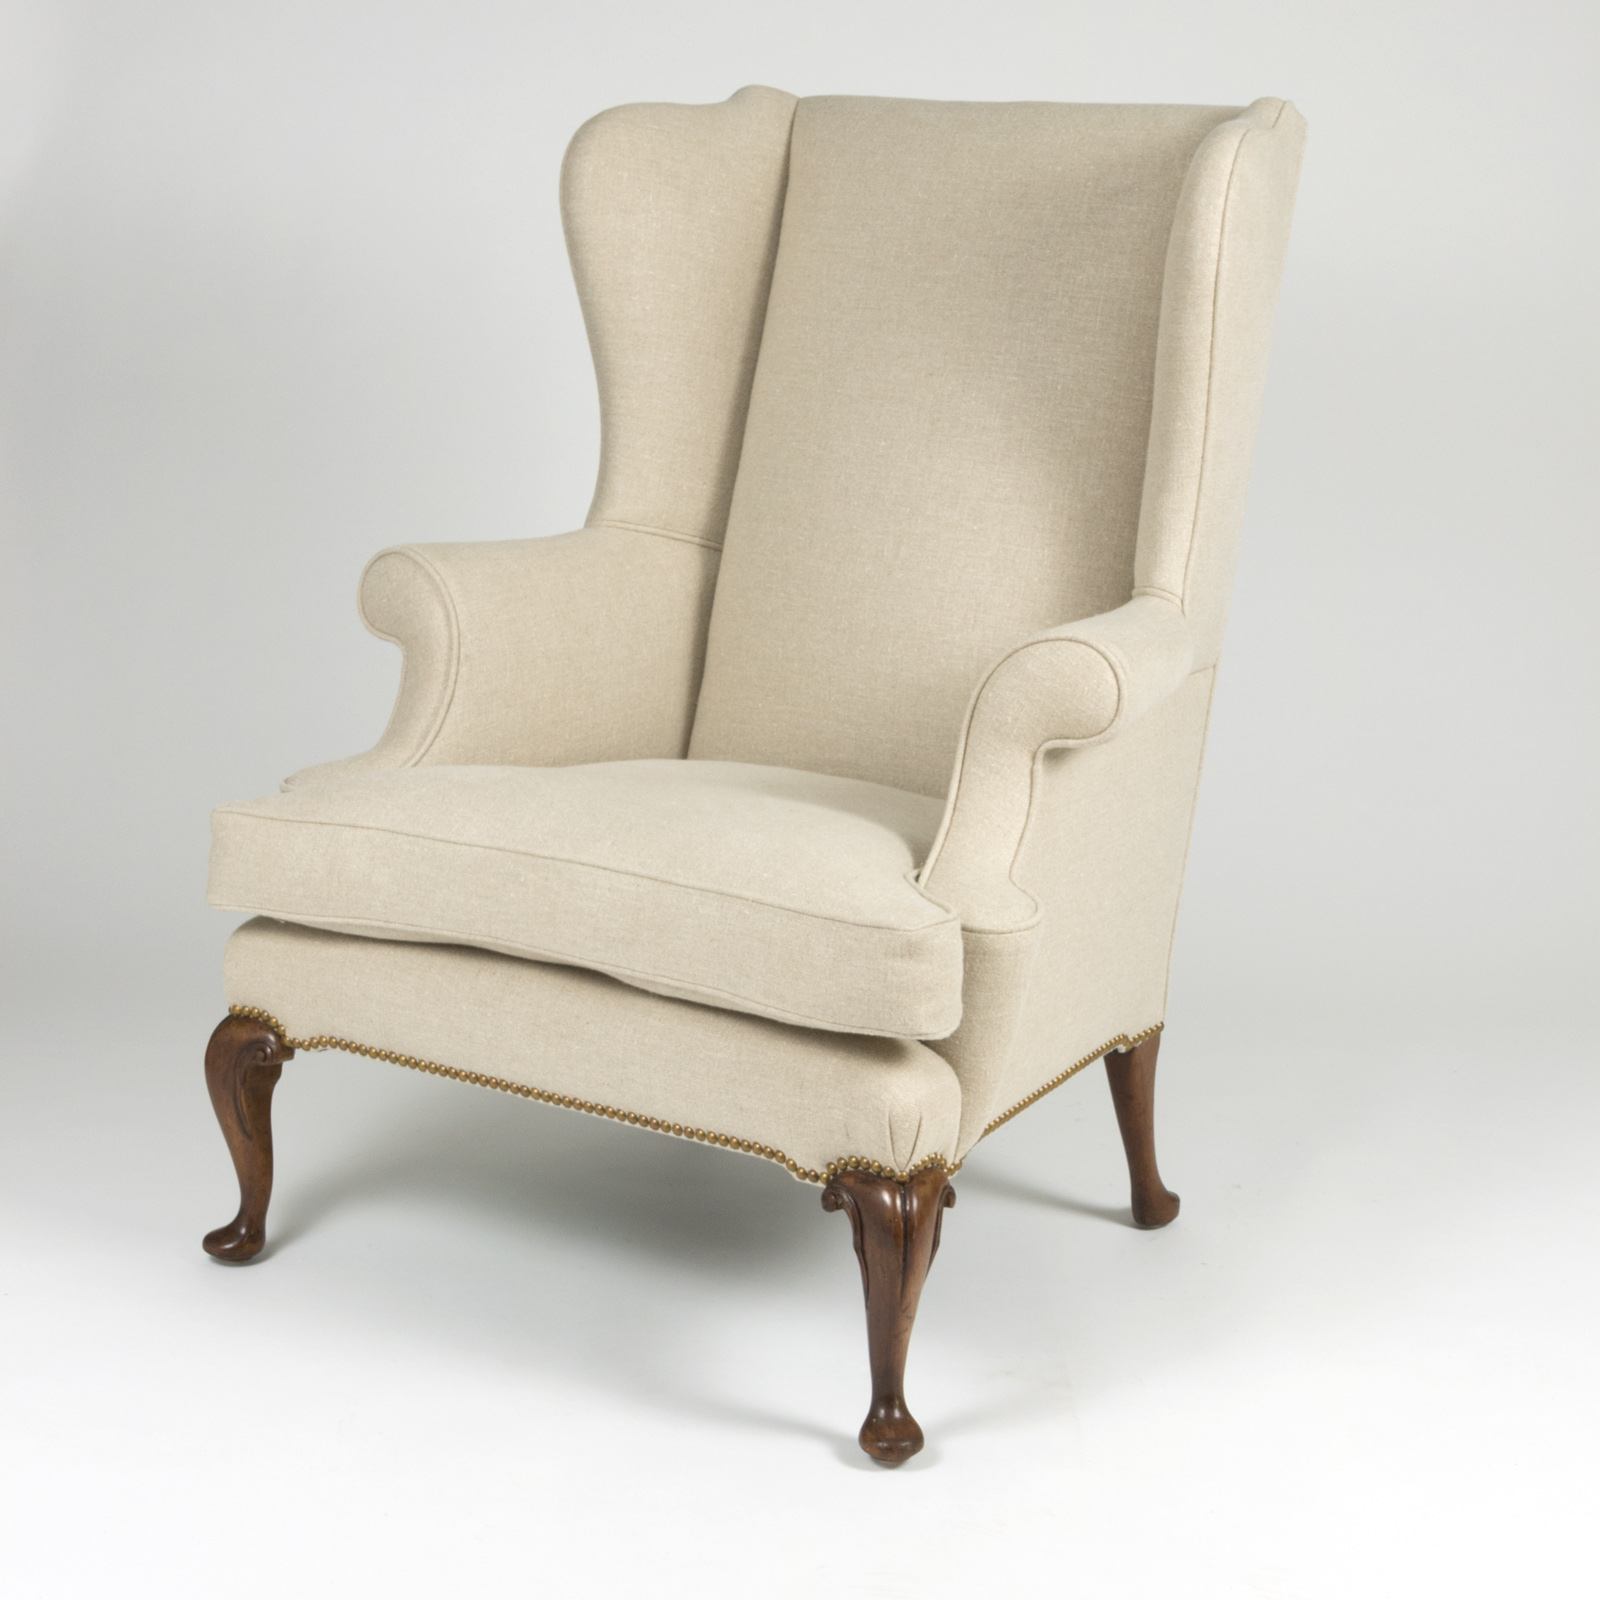 Mahogany Frame Upholstered Wing Chair English C 1880 415 355 1690,Best Places To Travel In November 2020 Usa